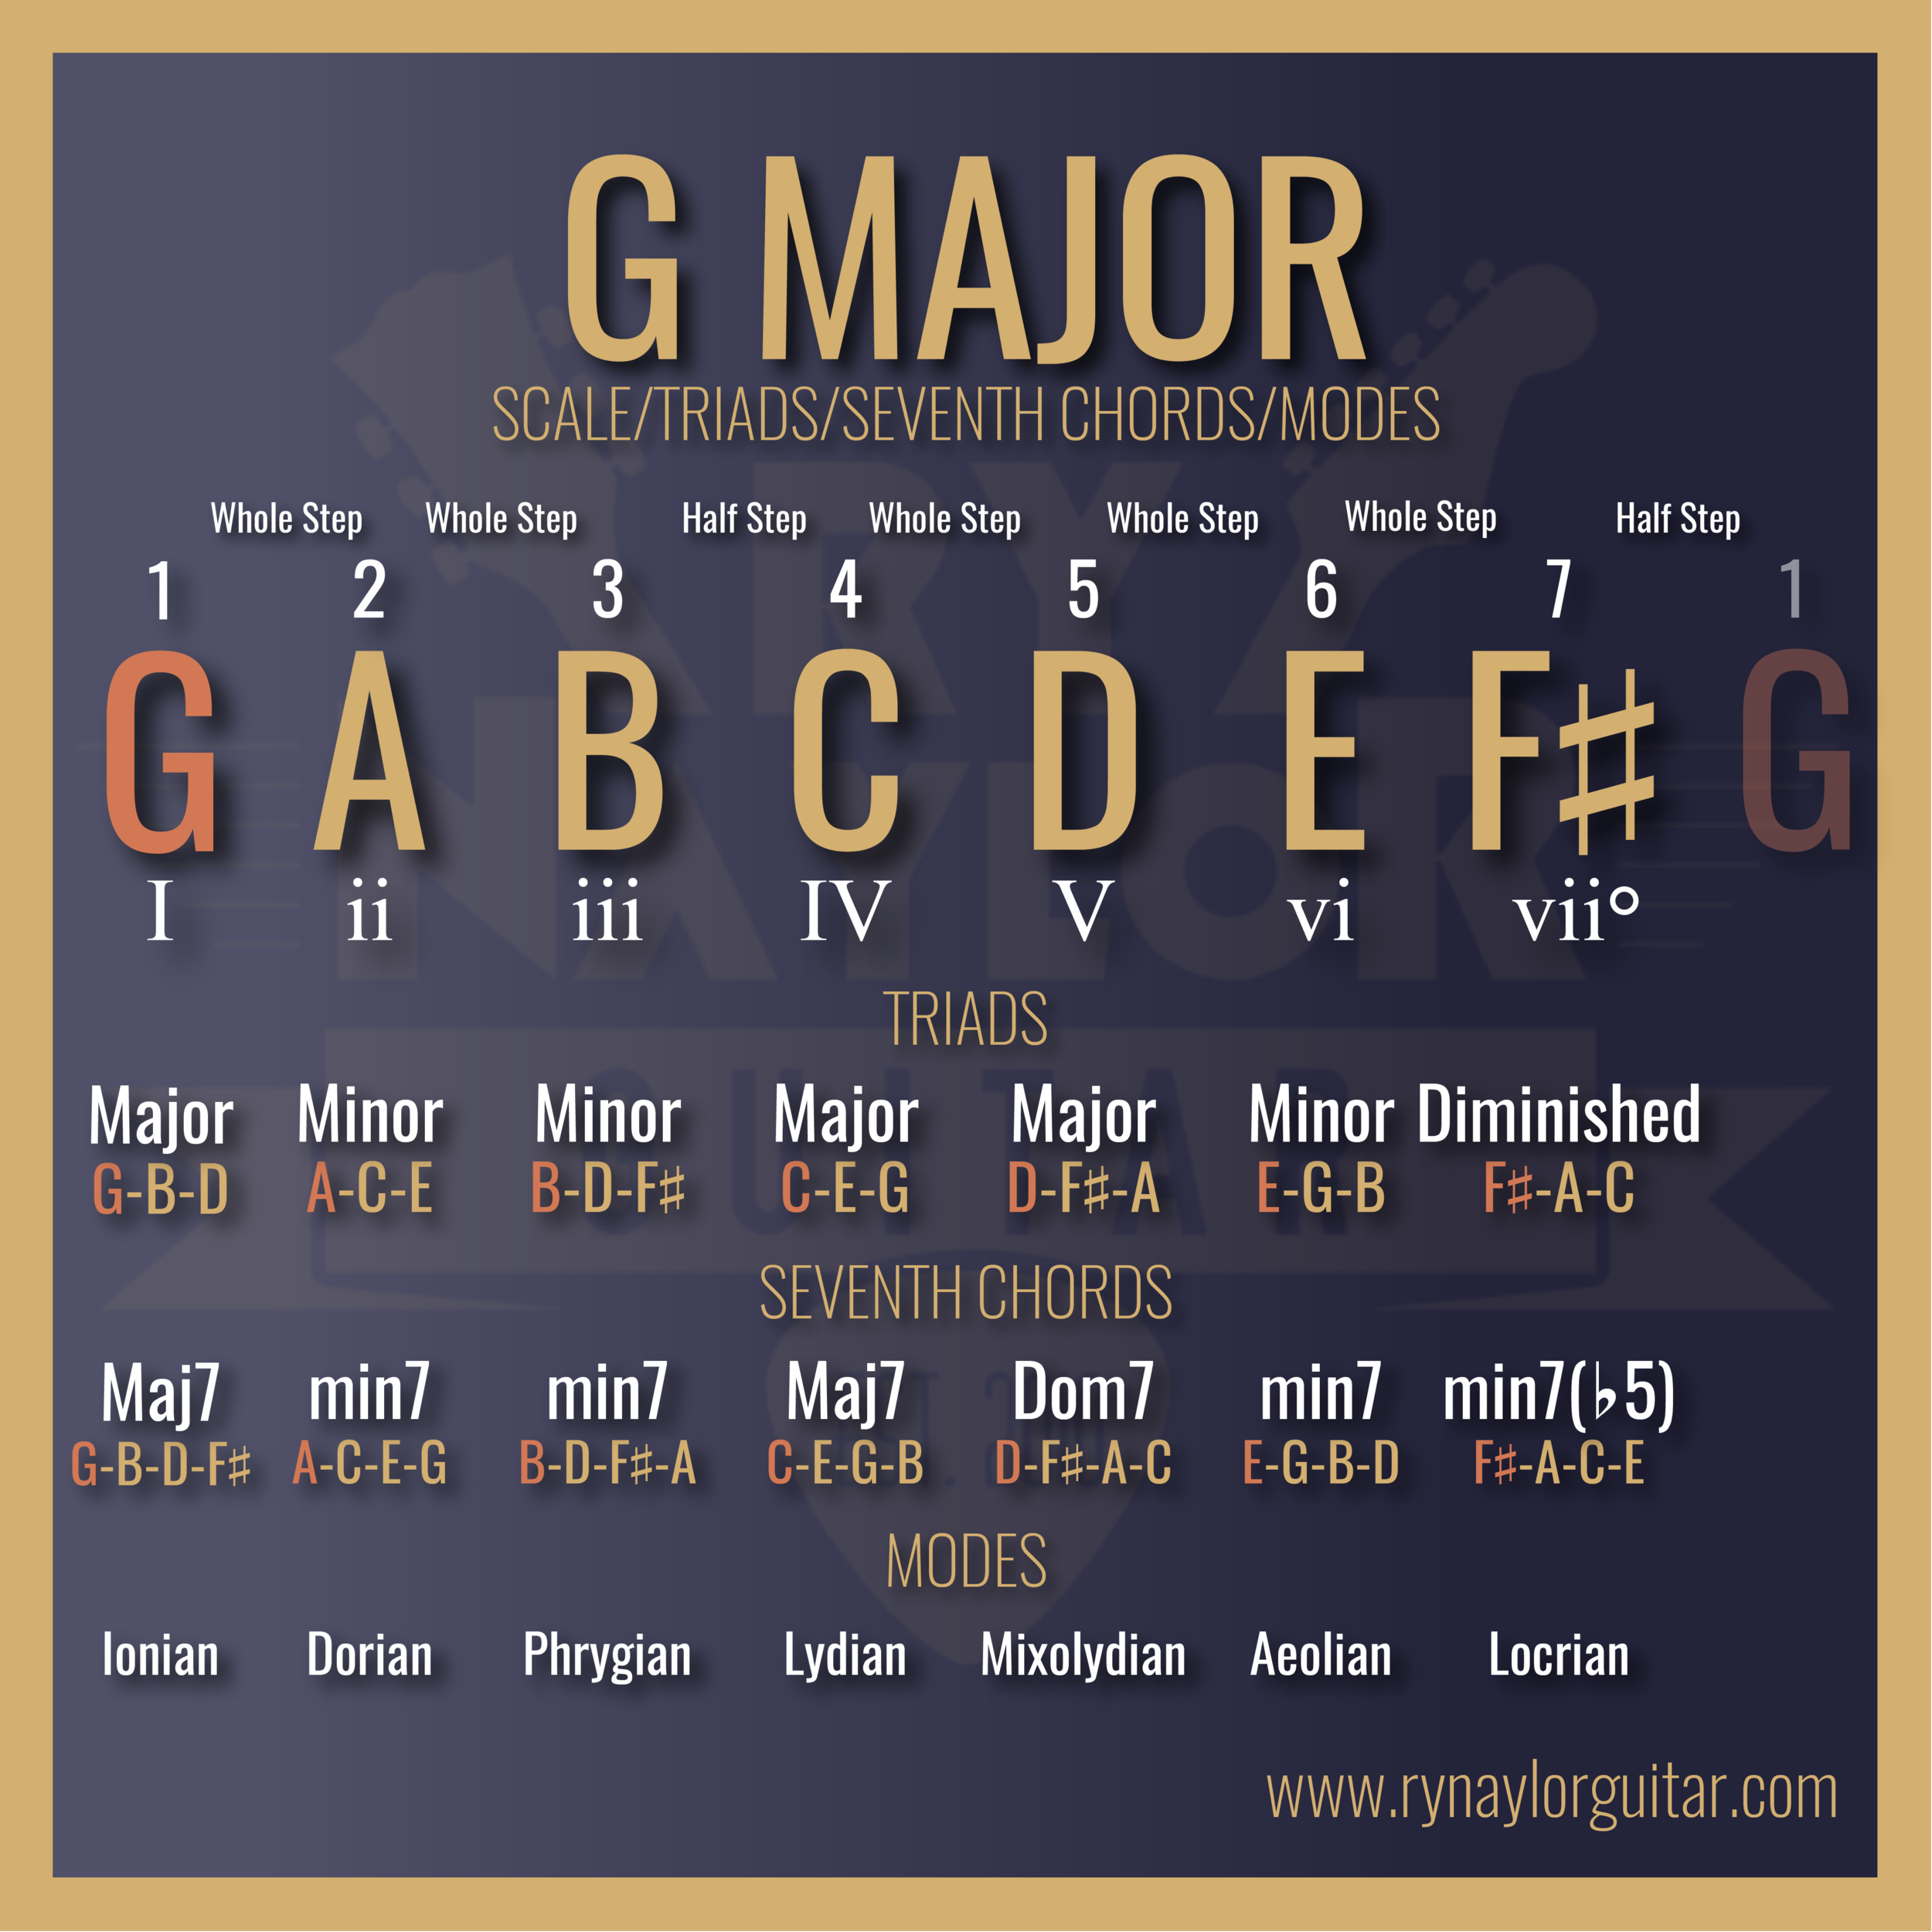 G Major Key Chart.png